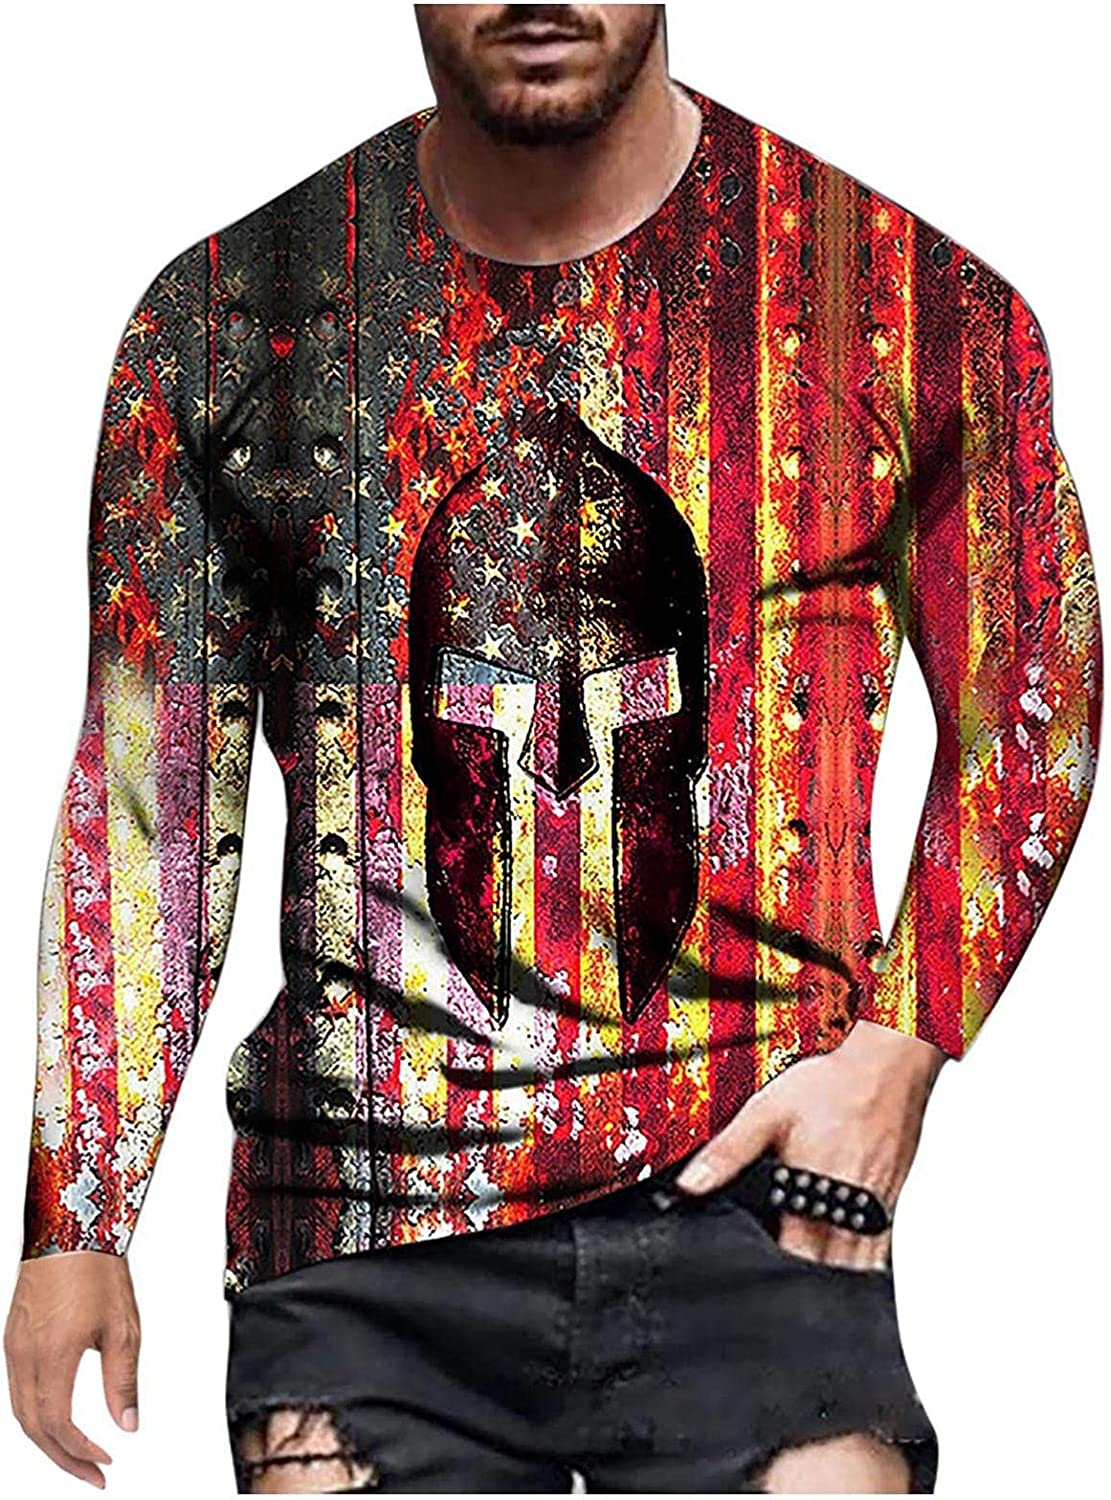 Aayomet Long Sleeve Tee Shirts for Men Pattern Print Cozy Streetwear Hip Hop Fashion Casual Pullover Tops